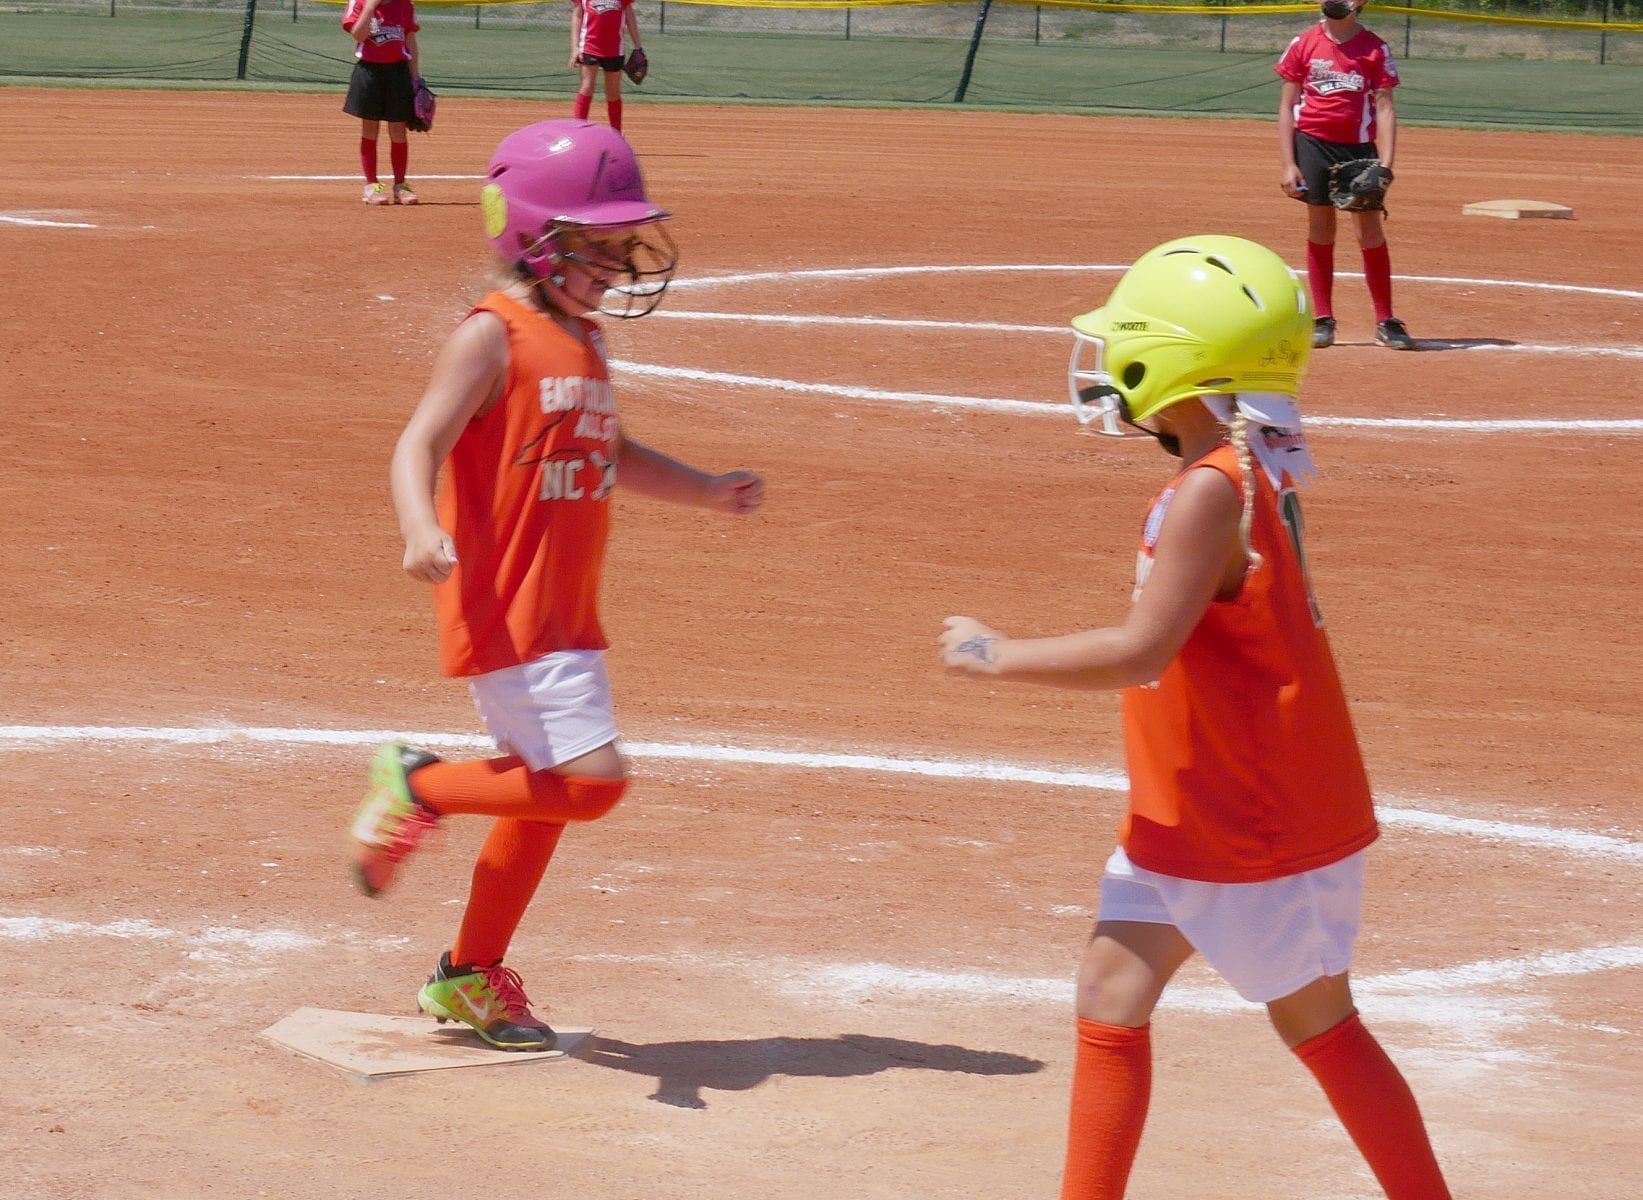 Dixie Softball World Series Update after Sunday play – The